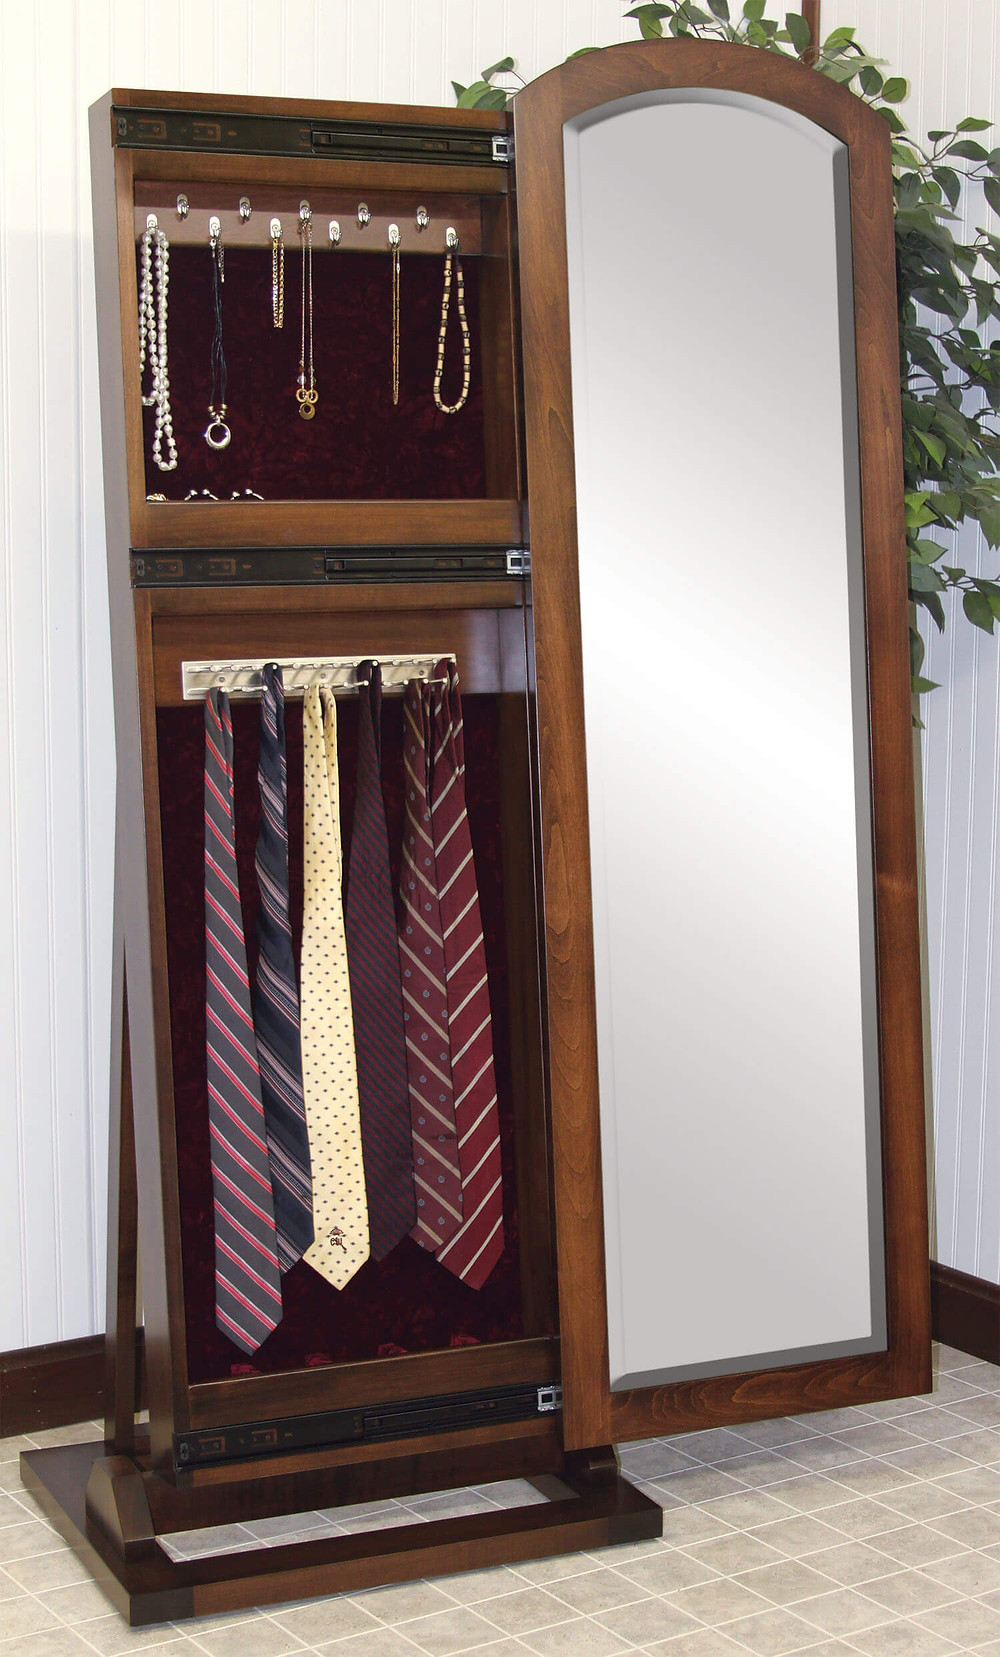 The Antique Shaker Jewelry/Tie Leaner Mirror by Country Corner is shown in brown maple